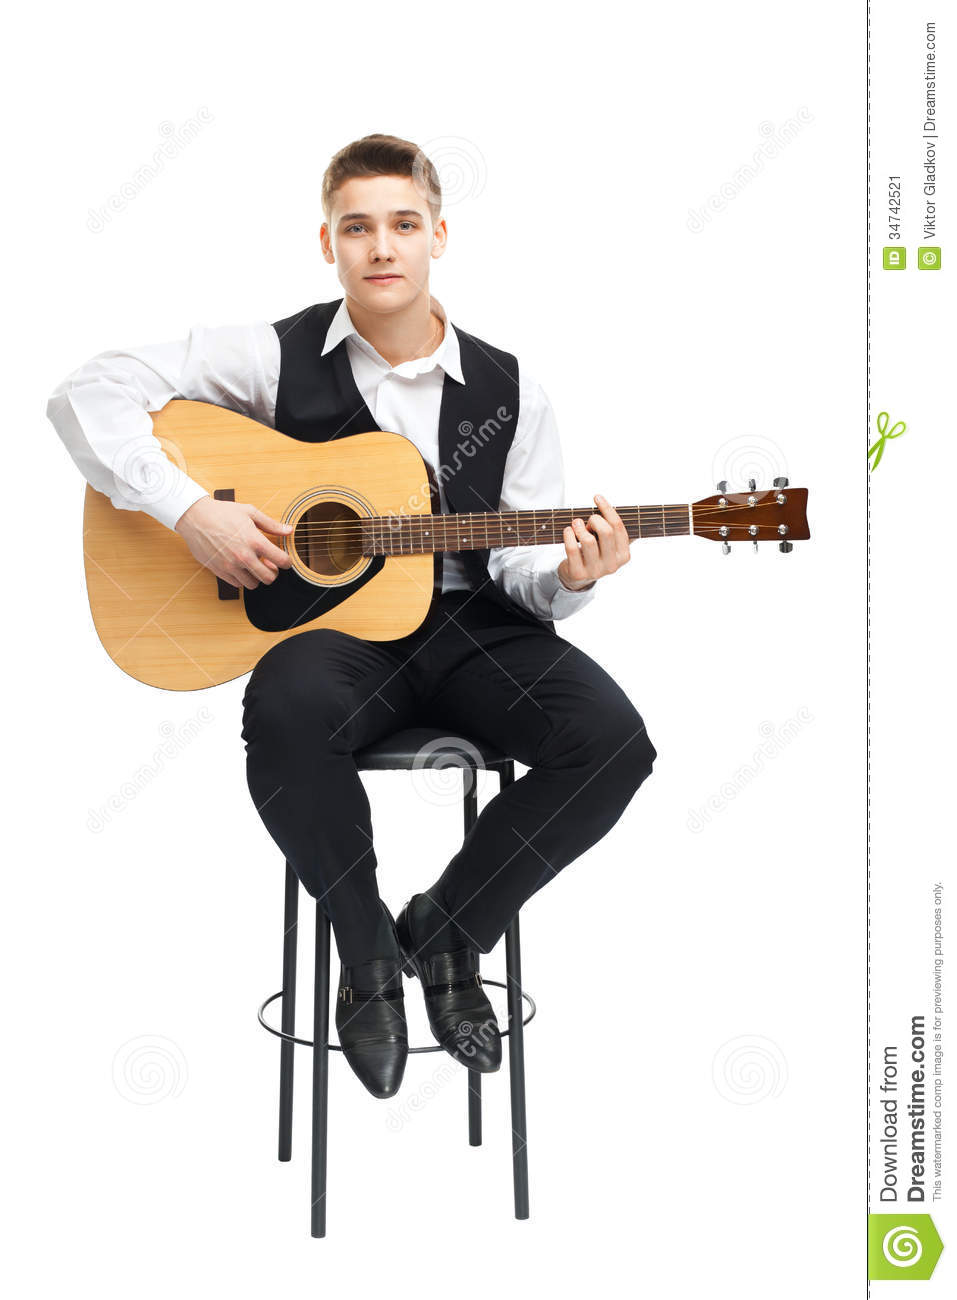 guitar playing chair wedding rental young man on stock image of front arts 34742521